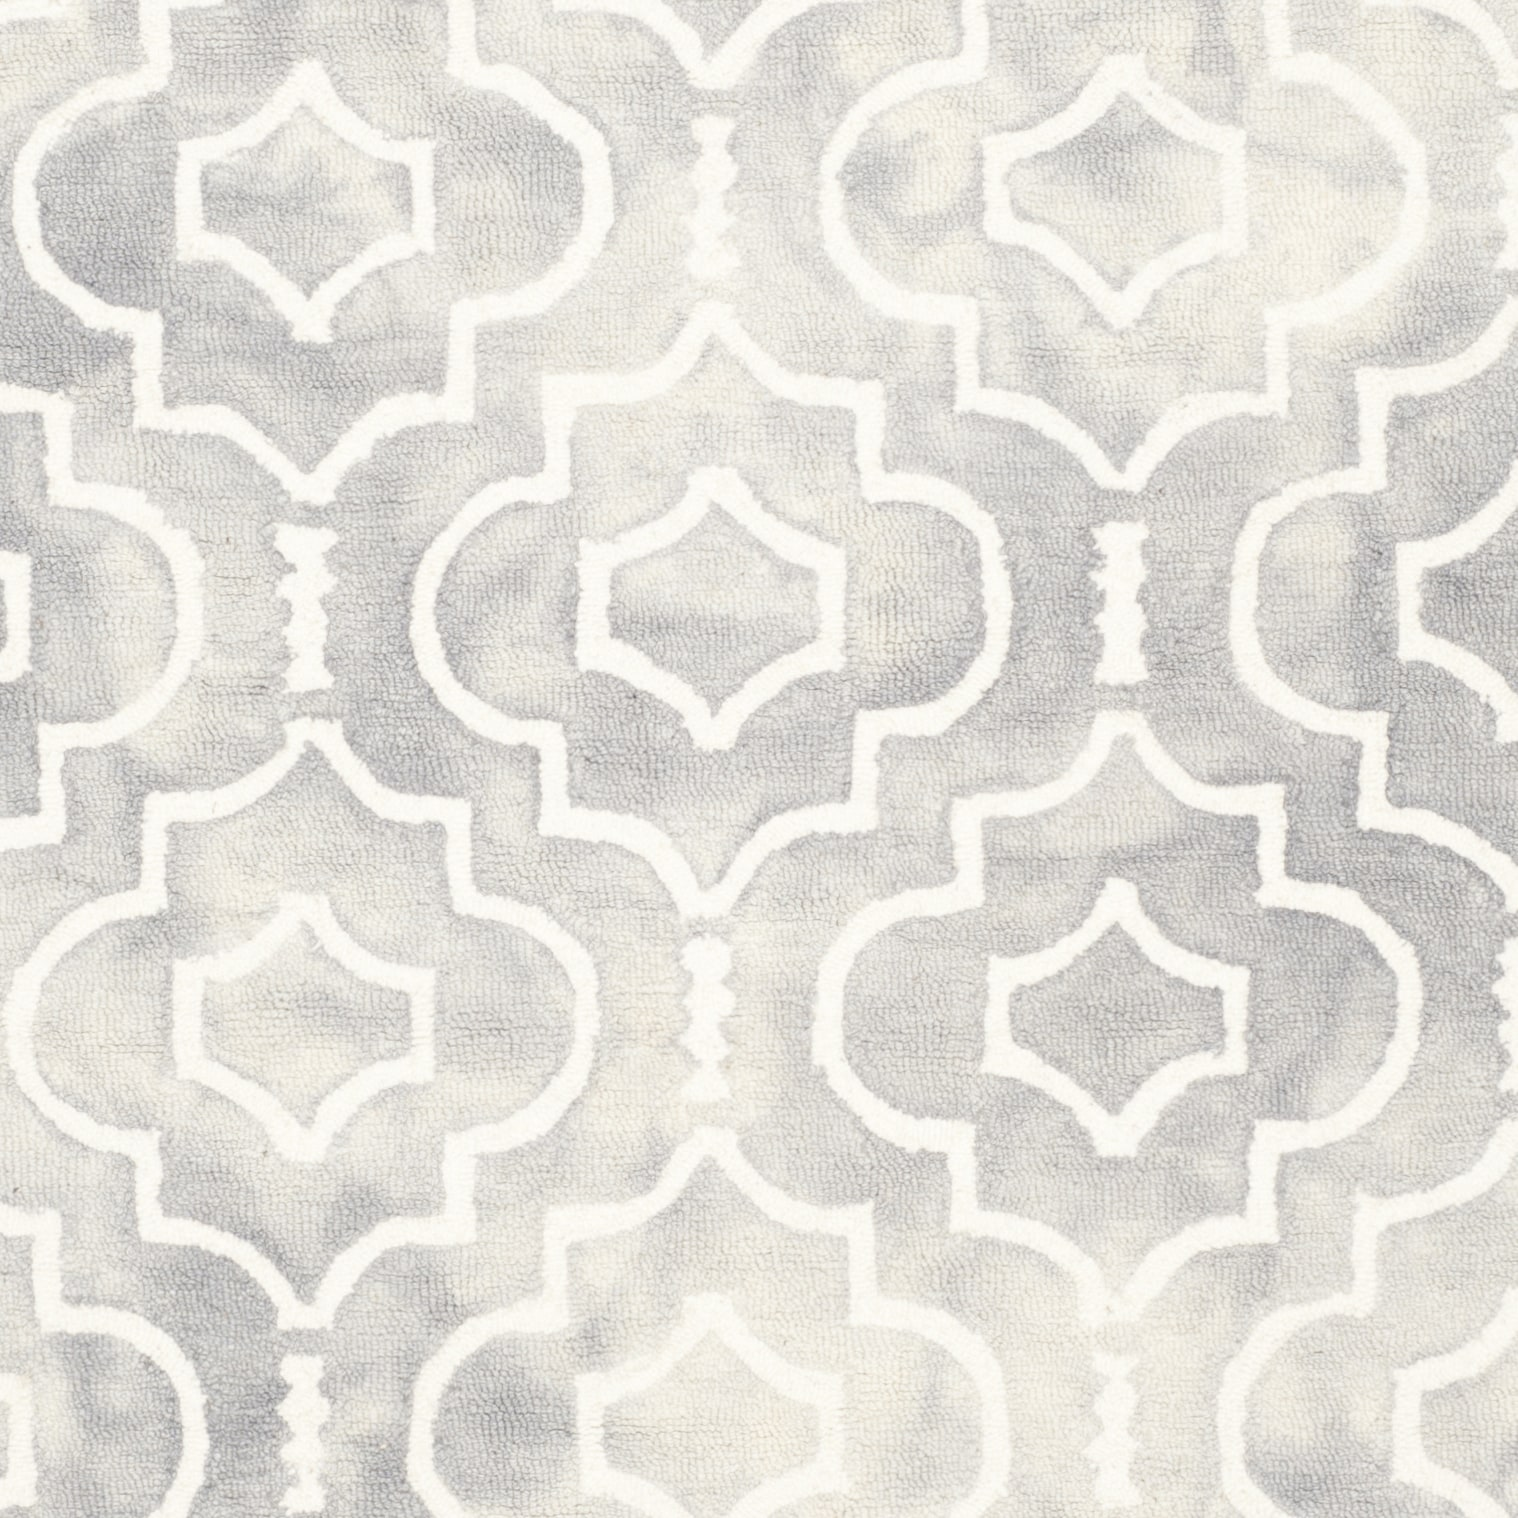 Download Wallpaper Grey Watercolor - Safavieh-Handmade-Dip-Dye-Watercolor-Vintage-Grey-Ivory-Wool-Rug-7-x-7-Square-62444509-cbaa-43bc-8bf9-c32c8d88a05a  Picture_804316.jpg